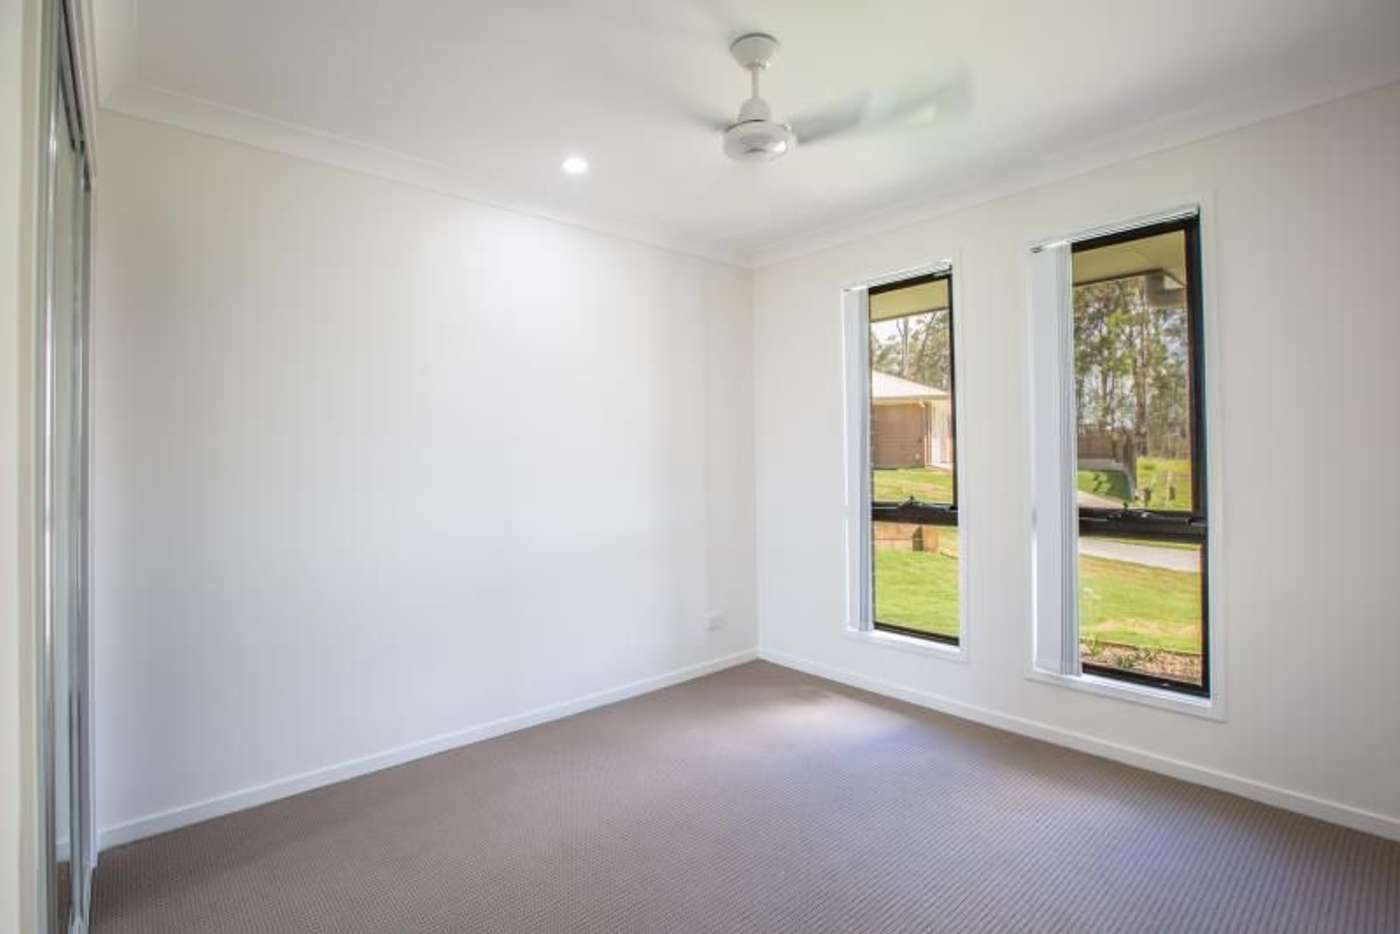 Sixth view of Homely house listing, 1/34 Dawson Place, Brassall QLD 4305